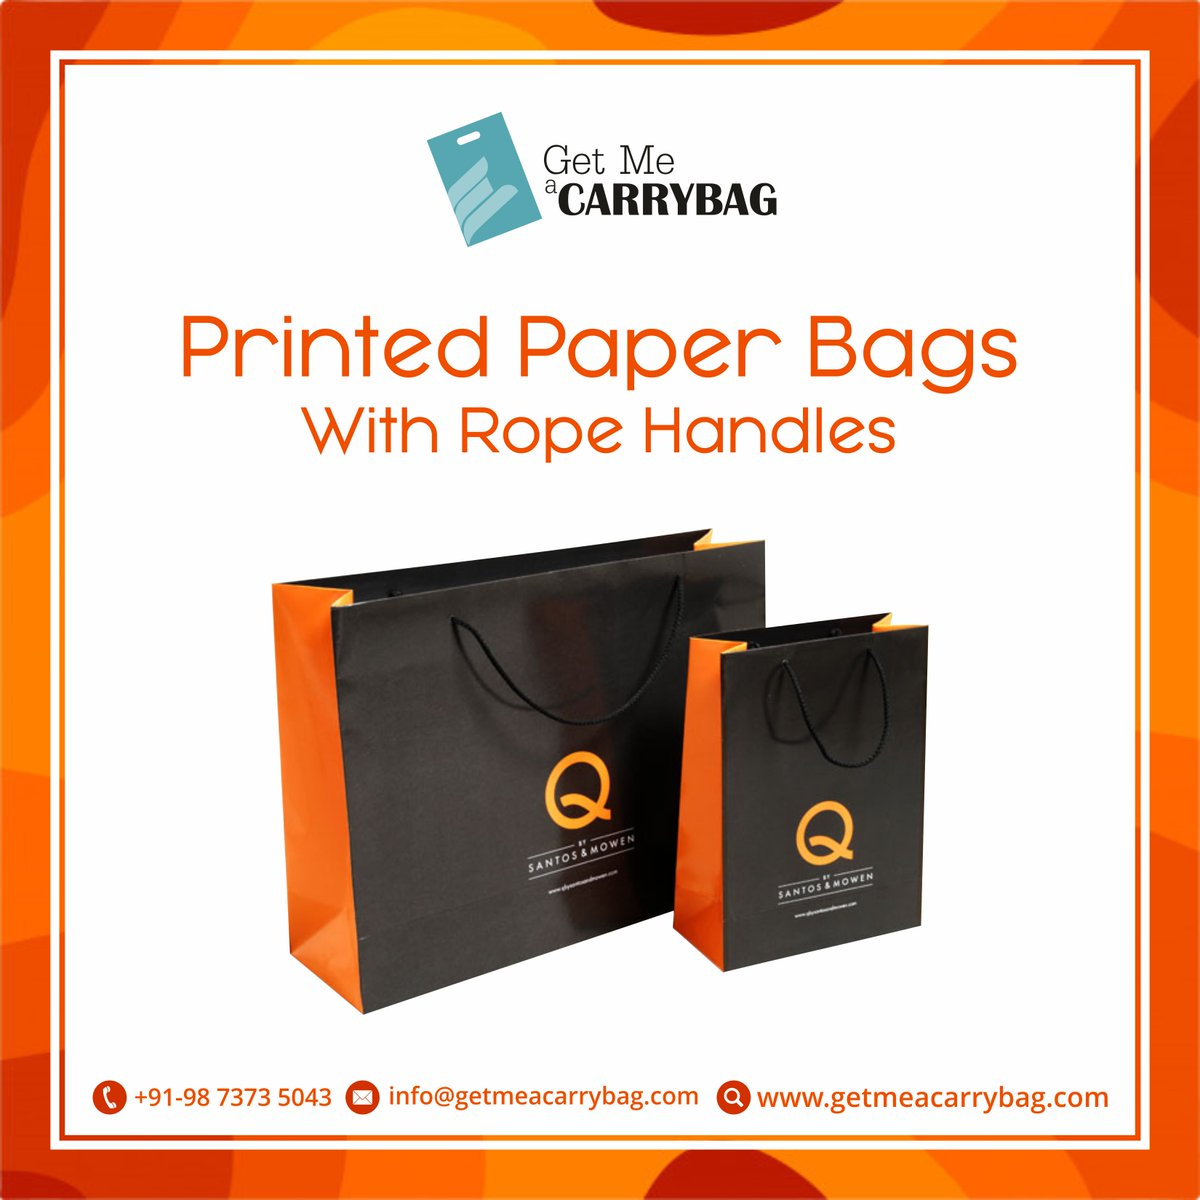 Getmeacarrybag On Twitter Printed Paper Bags With Rope Handles Visit Https T Co Eechc9oul9 Call Or Whatsapp At 91 9873735043 Mail Us Info Getmeacarrybag Com Getmeacarrybag Print Customized Design Paper Carry Bag Ropehandles Https T Co